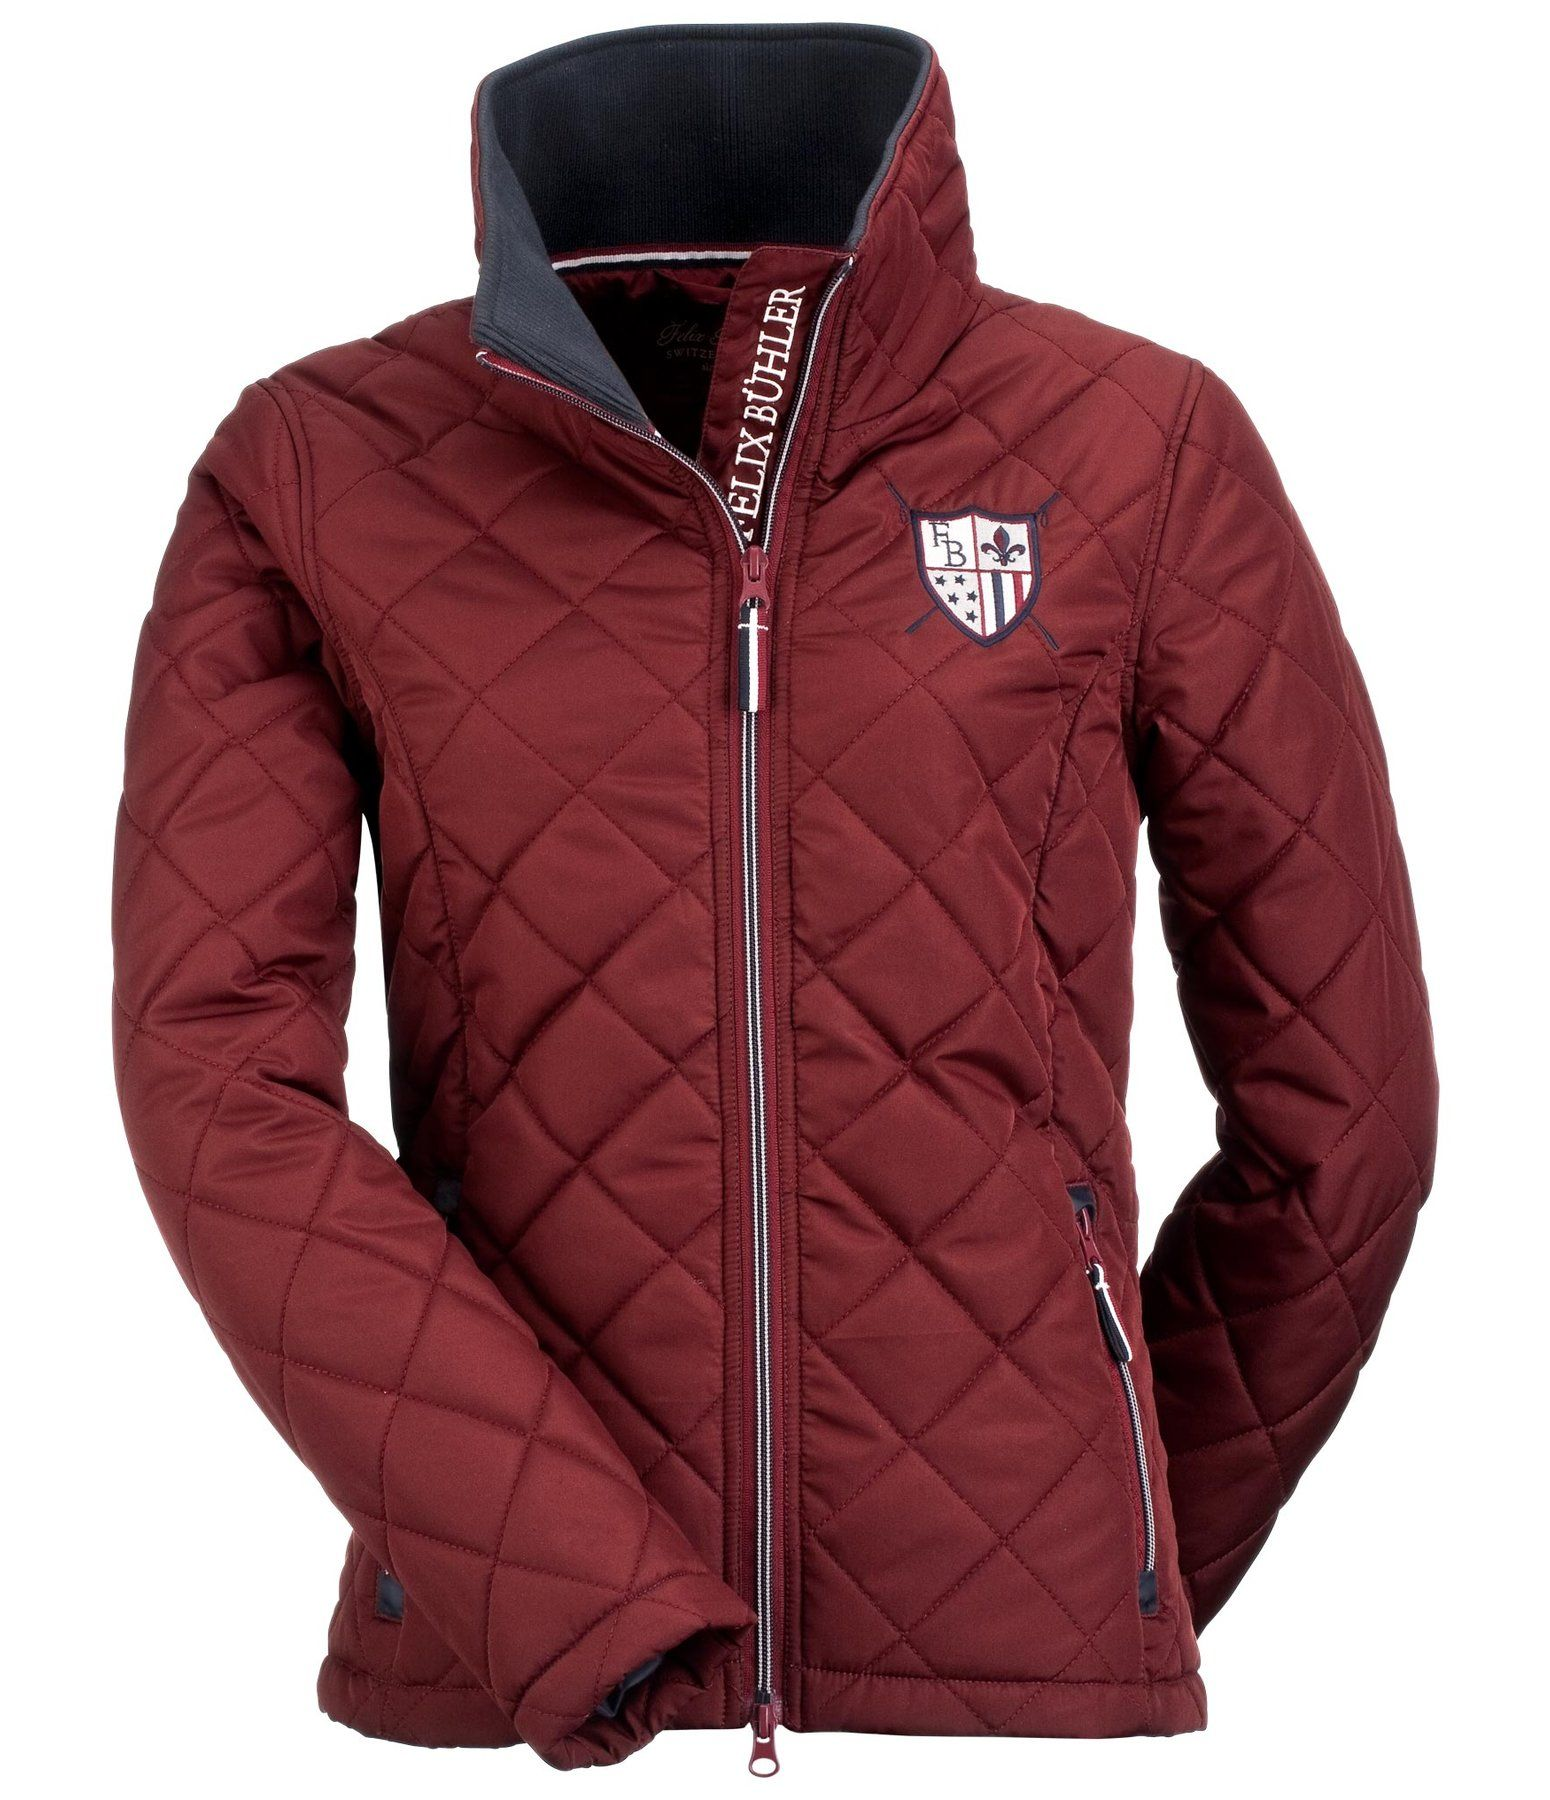 Quilted Jacket Loreen Ii Riding Jackets Jumpers Gilets Kramer Equestrian Jackets Riding Jacket Quilted Jacket [ 1800 x 1550 Pixel ]